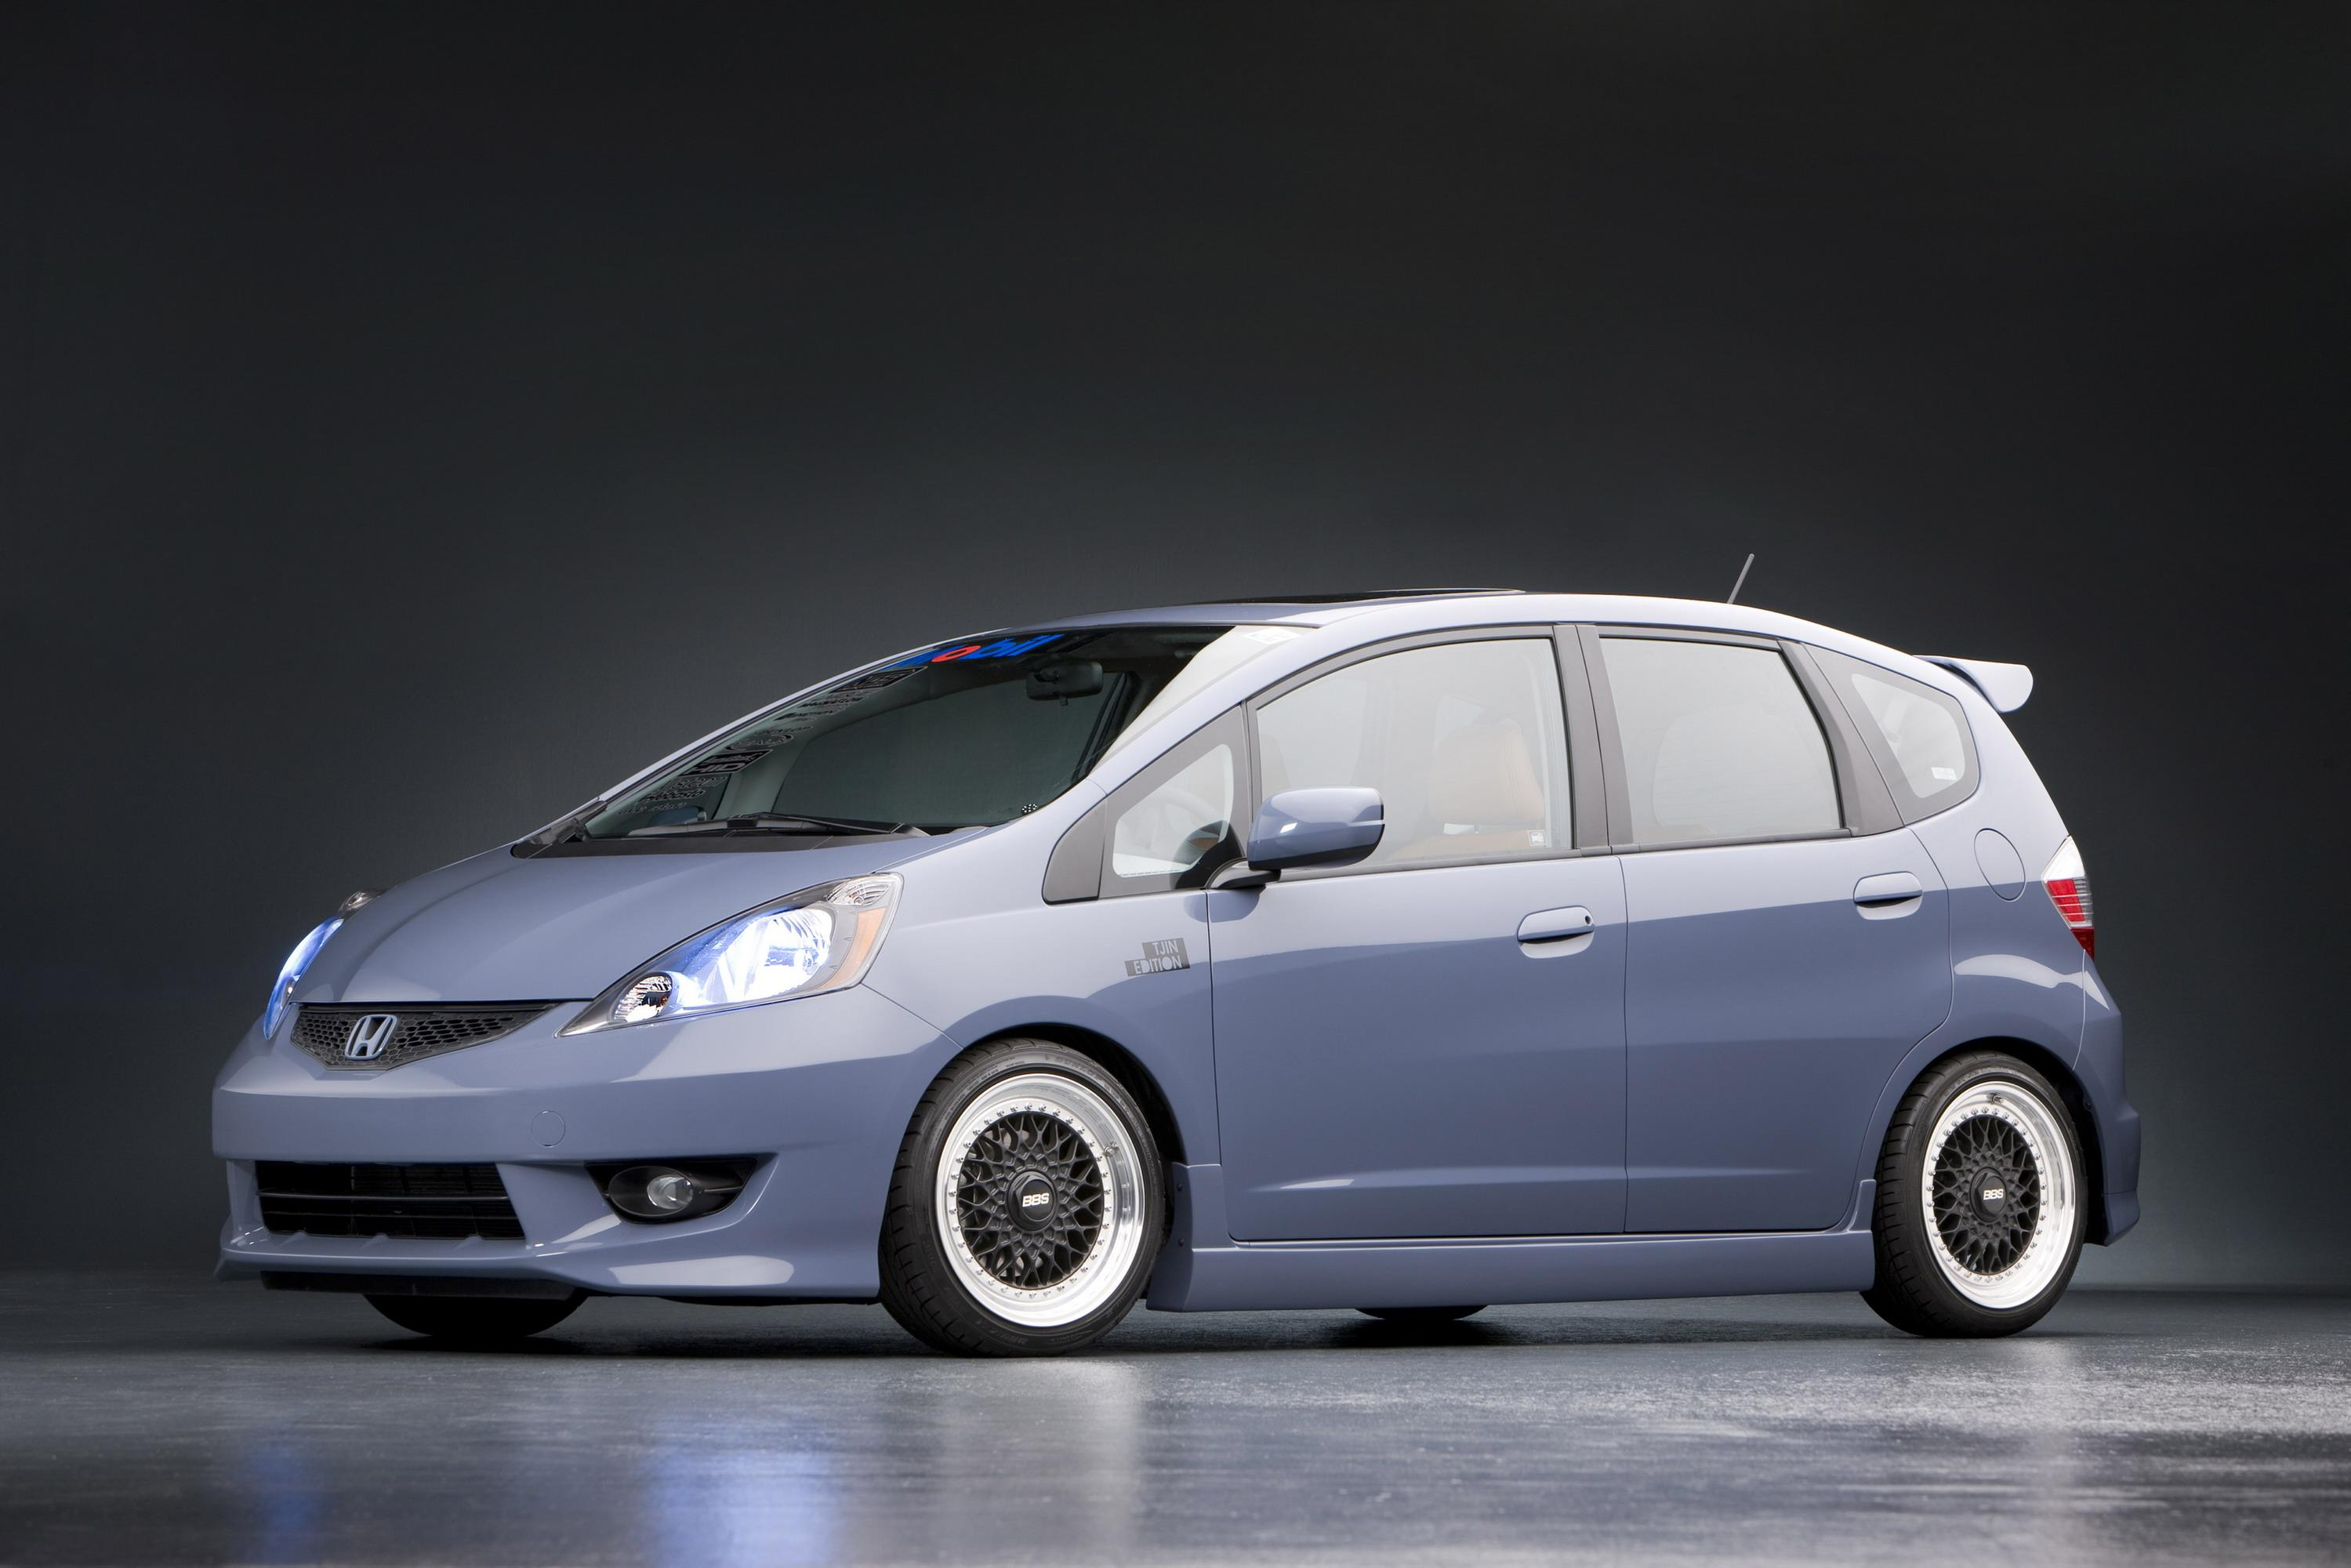 2009 honda fit tjin edition review top speed. Black Bedroom Furniture Sets. Home Design Ideas